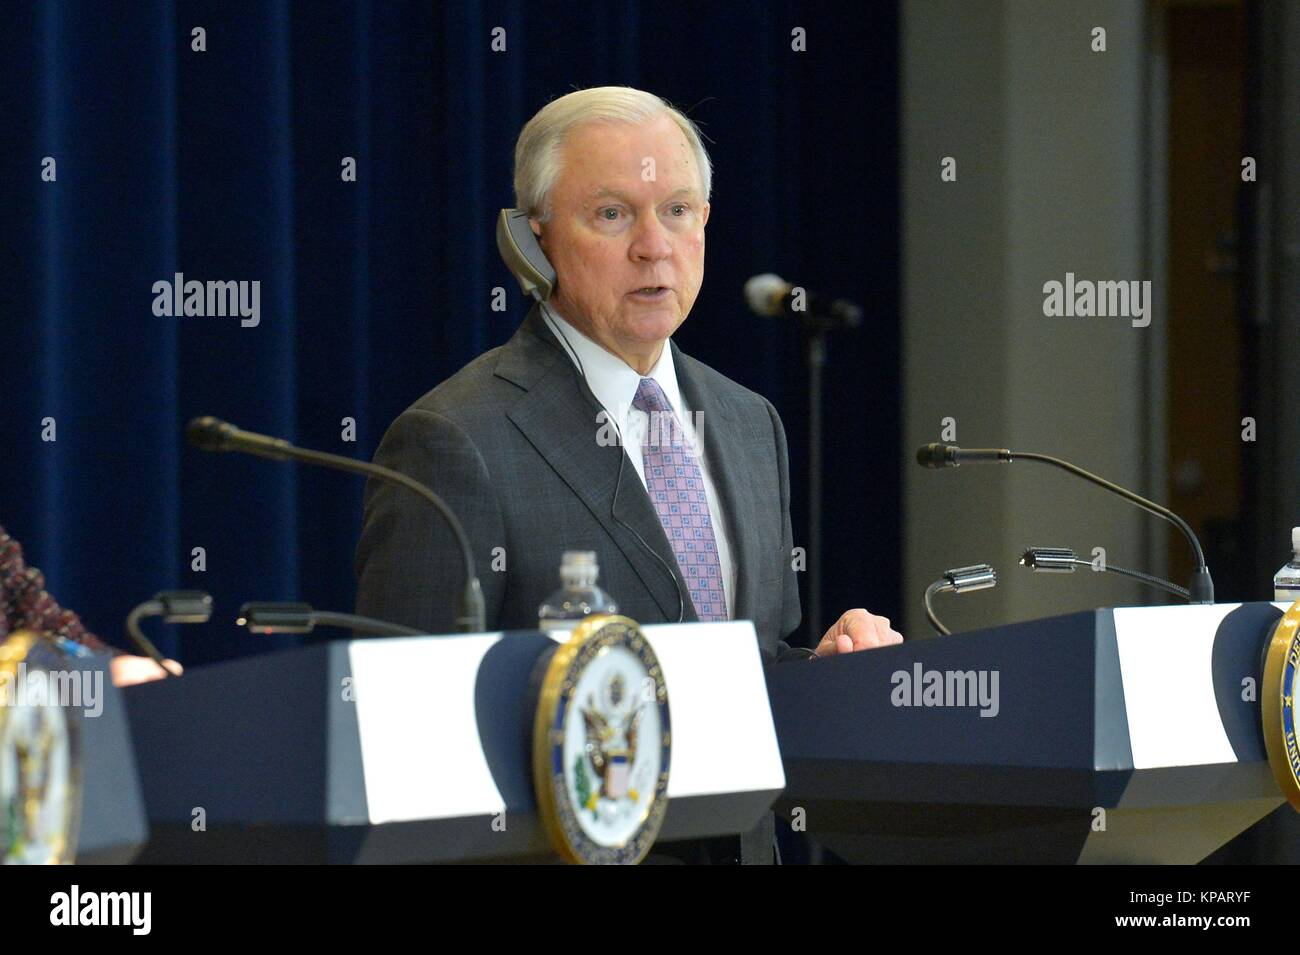 Washington DC, USA. 14th Dec, 2017. U.S. Attorney General Jeff Sessions delivers remarks at the Second U.S.-Mexico - Stock Image